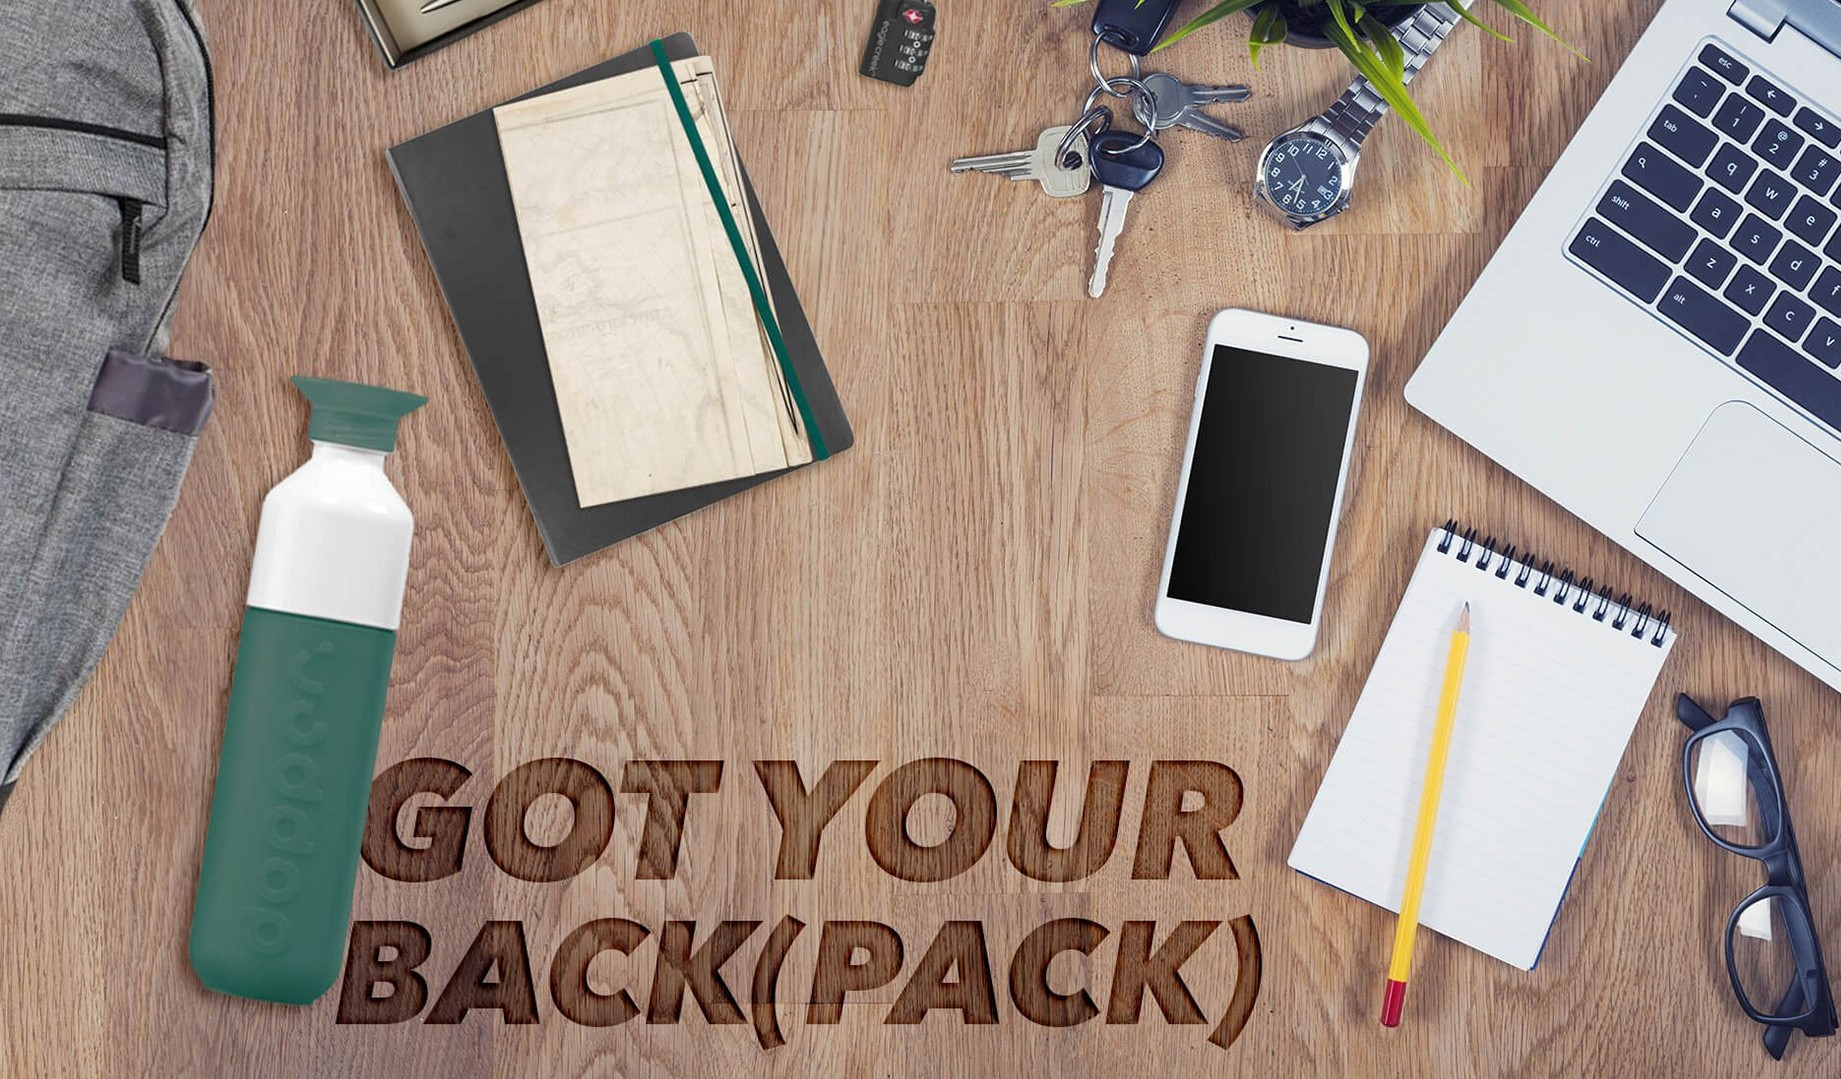 Got your back(pack)